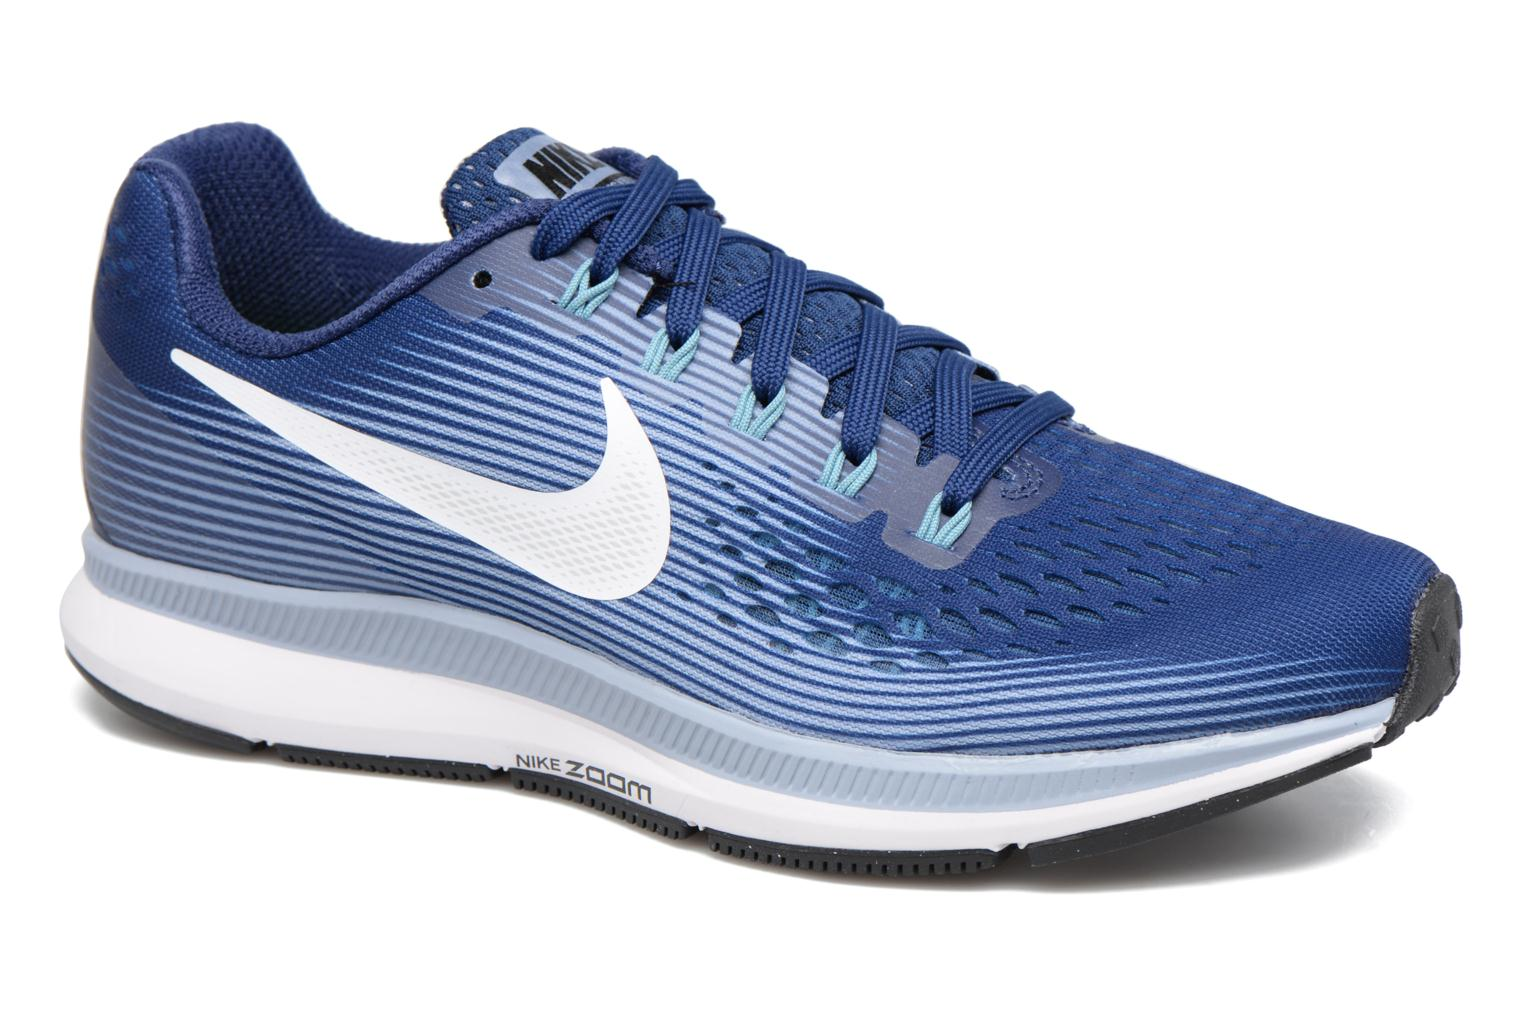 Wmns Nike Air Zoom Pegasus 34 Binary Blue/White-Glacier Grey-Cerulean